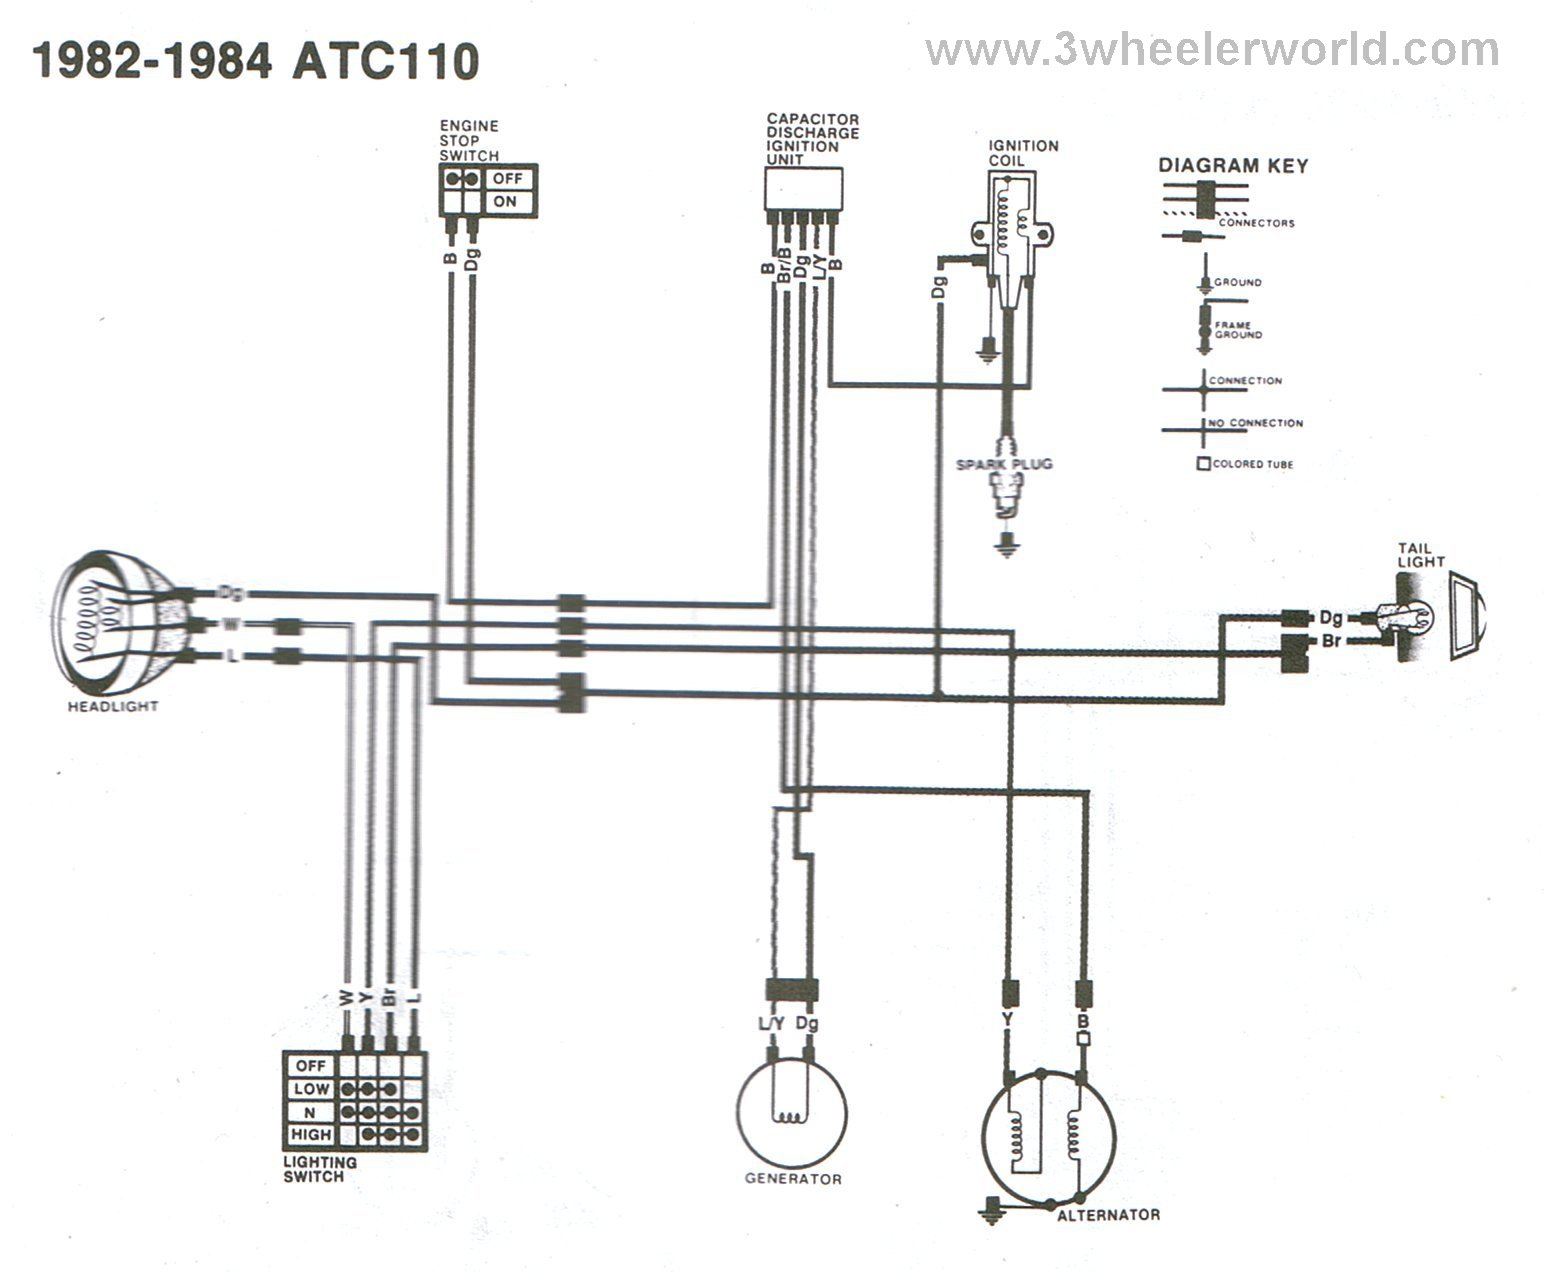 hight resolution of atc110 1982 thru 1984